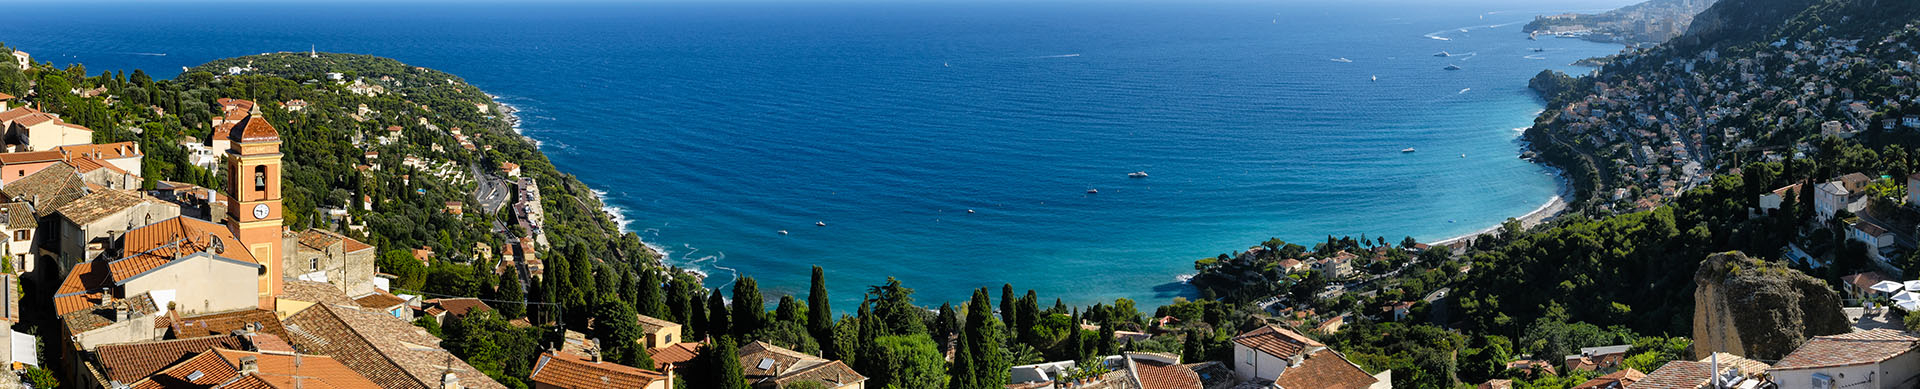 Properties for sale : Пределами Монако - (415 properties) | Monte-Carlo Real Estate